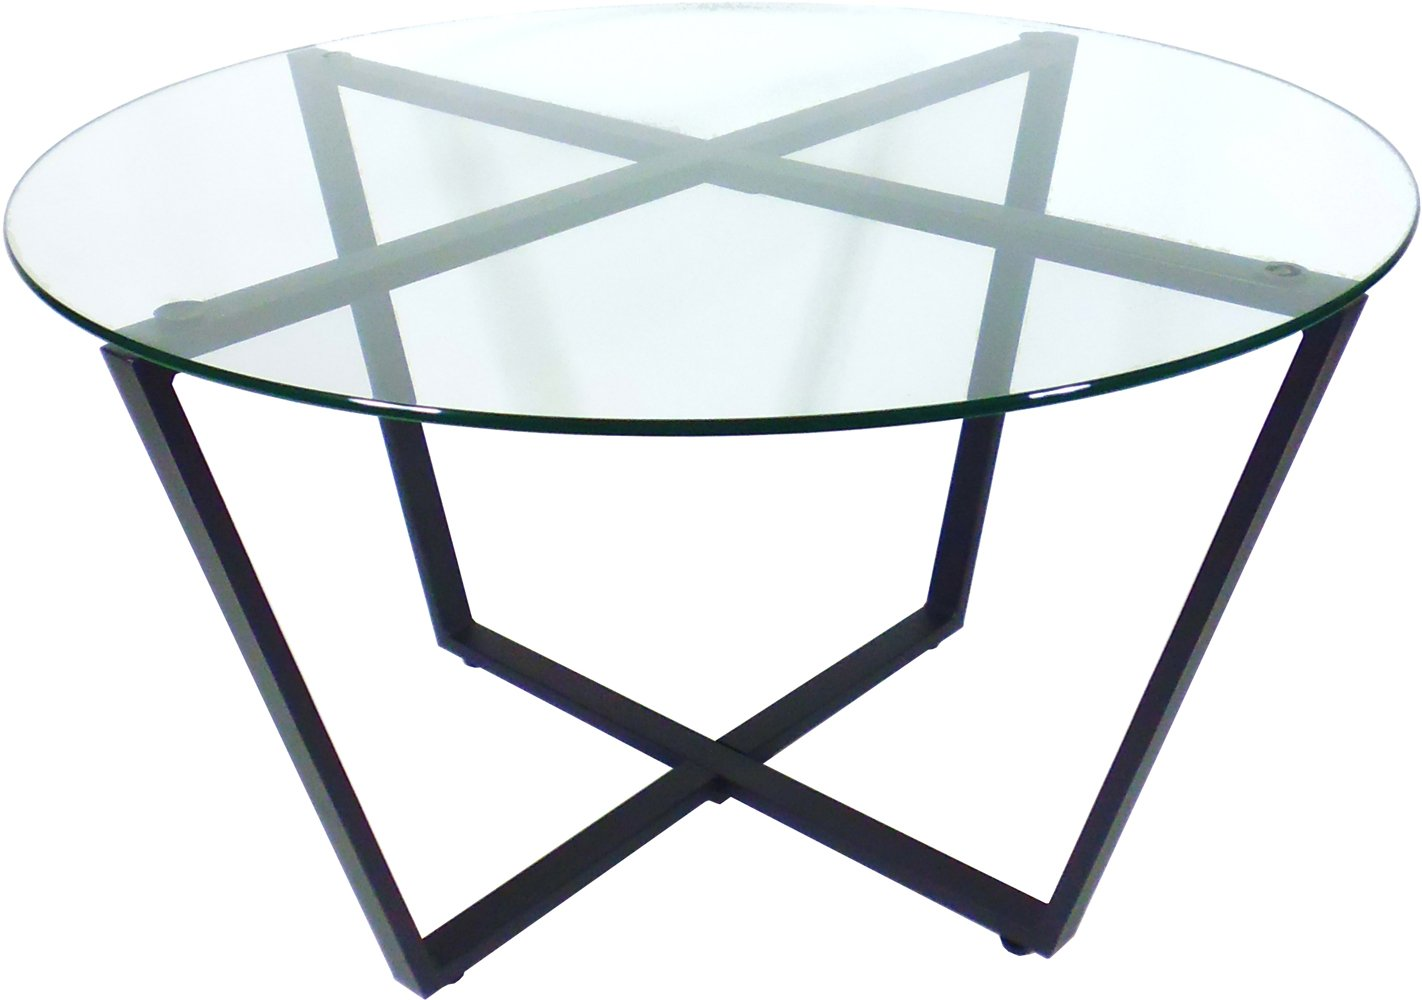 Glass end table clear top black base living room all occasional table ebay Black glass side tables for living room